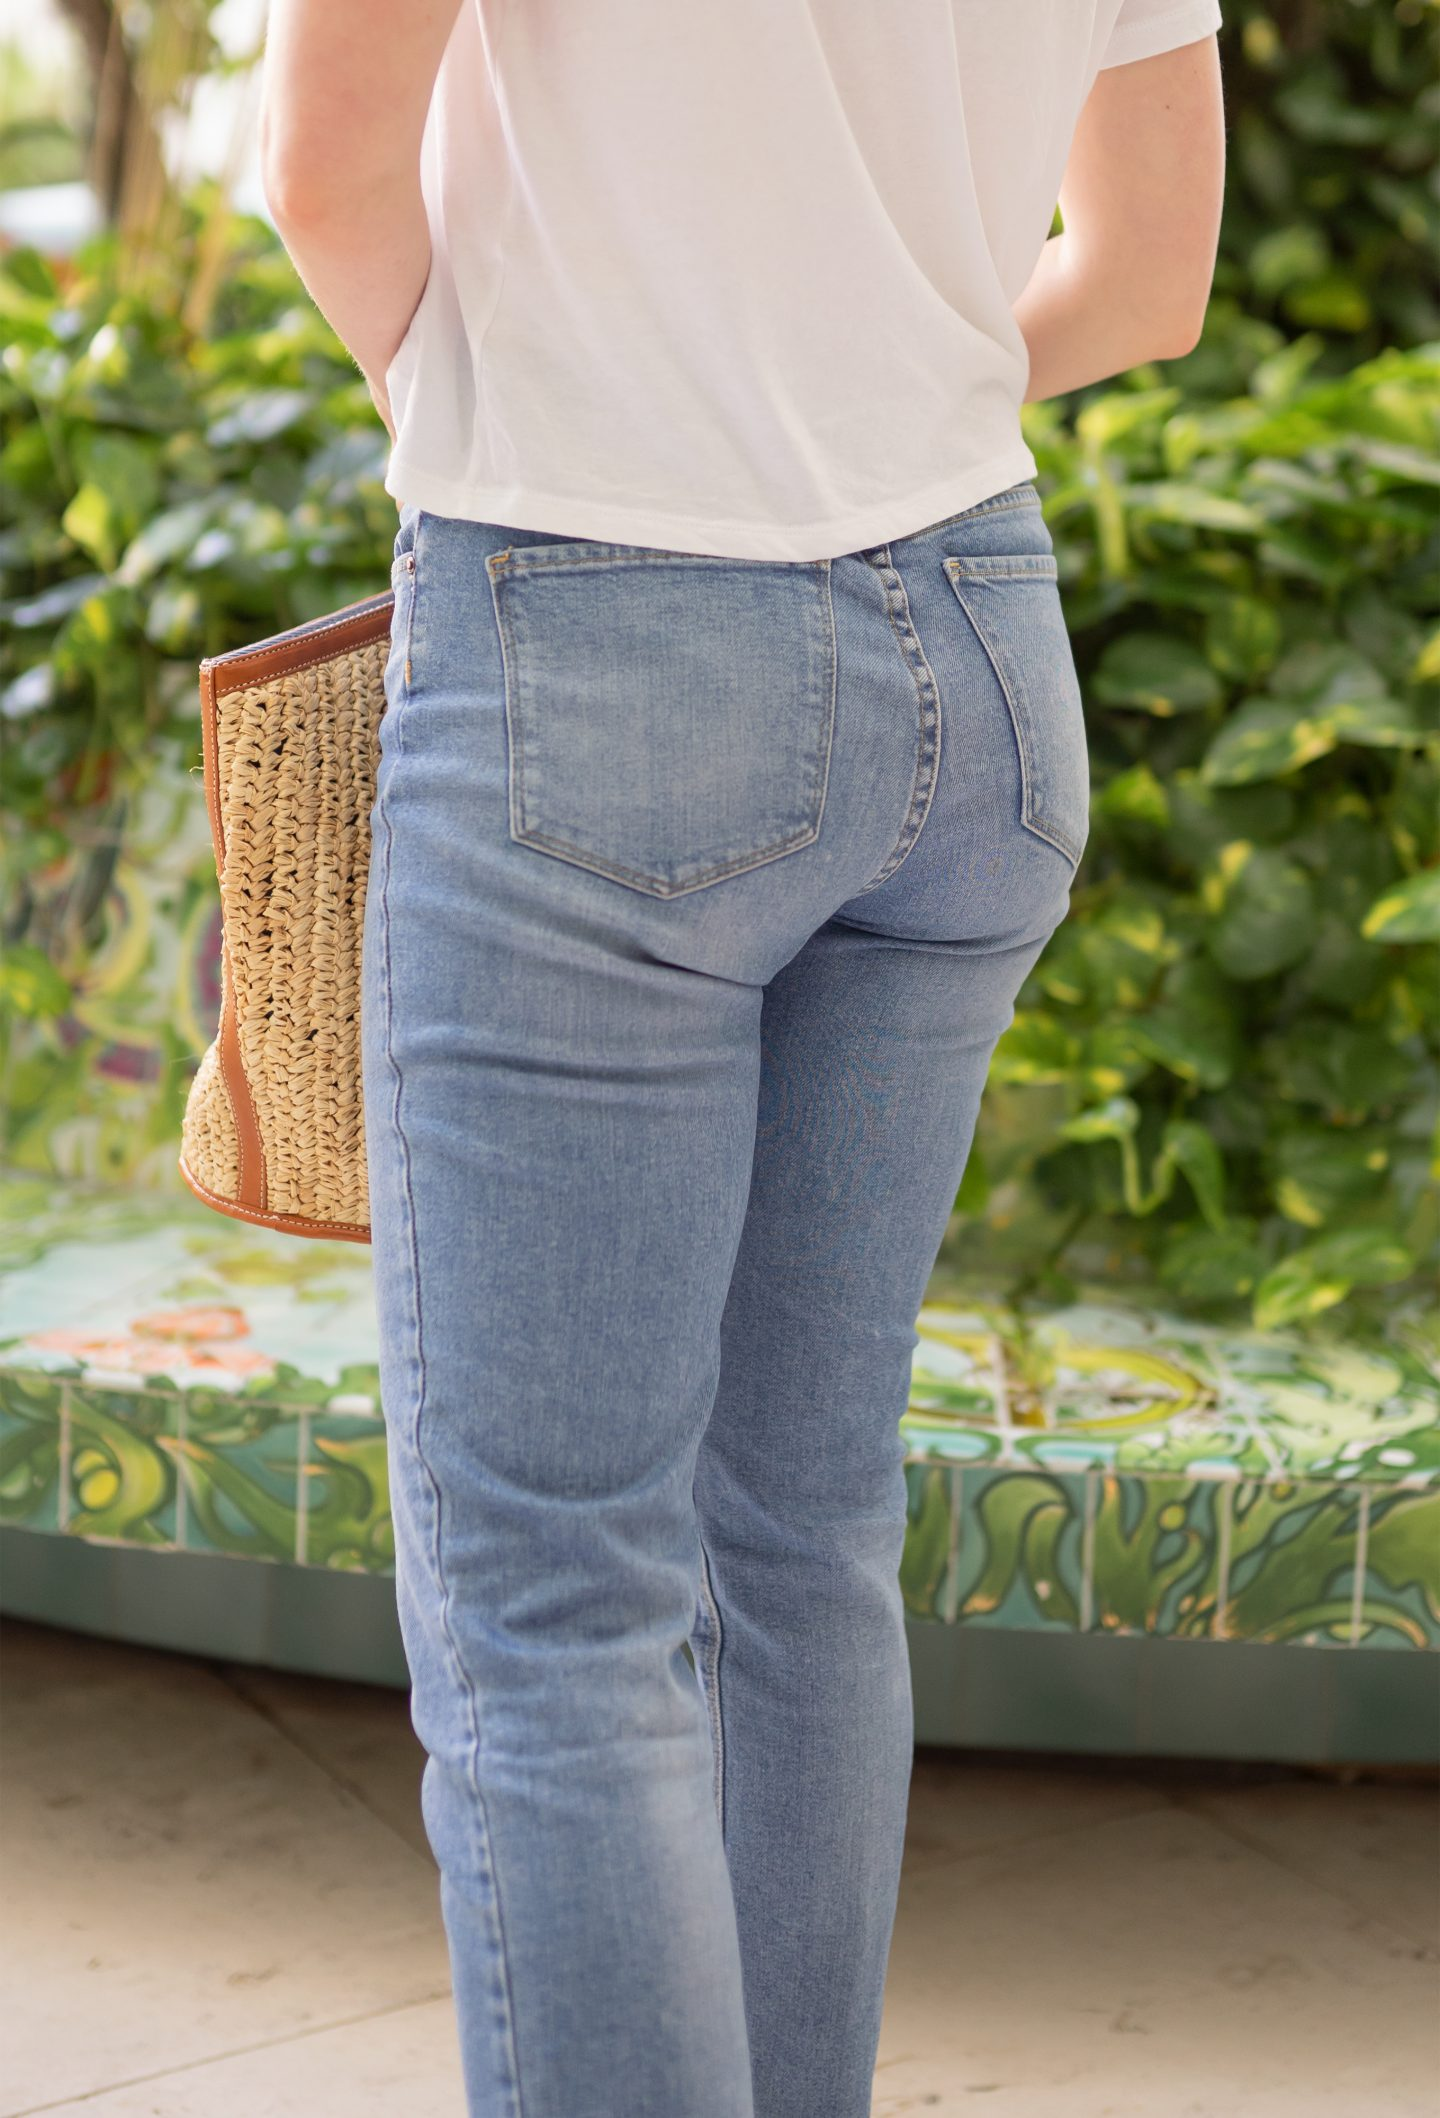 Mott & Bow Jeans Review - www.ashleybrookedesigns.com